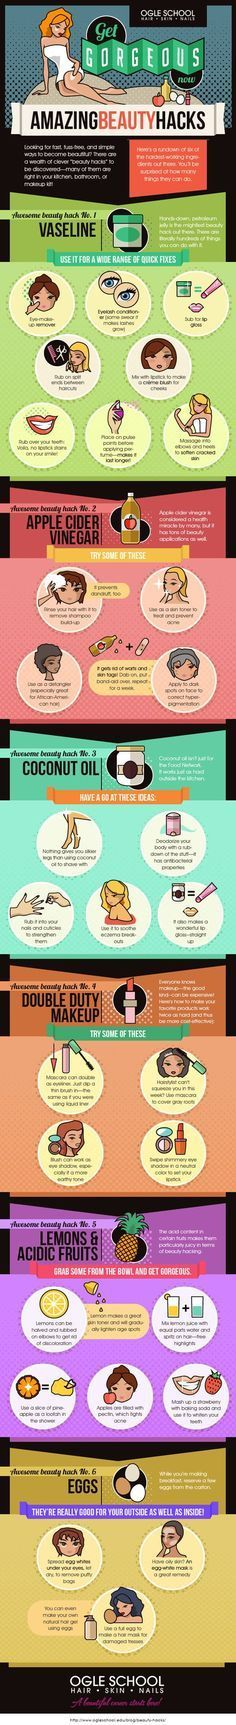 Get Gorgeous Now: Six Amazing Beauty Hacks // In need of a detox? Get your teatox on with 10% off using our discount code 'PINTEREST10' at www.skinnymetea.com